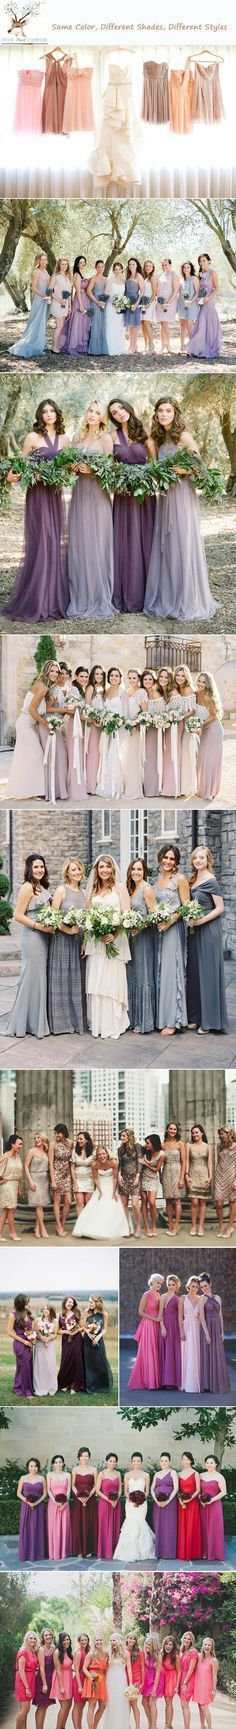 Top 6 Ways to Do Mismatch Bridesmaid Dresses | http://www.deerpearlflowers.com/top-6-ways-to-do-mismatch-bridesmaid-dresses/